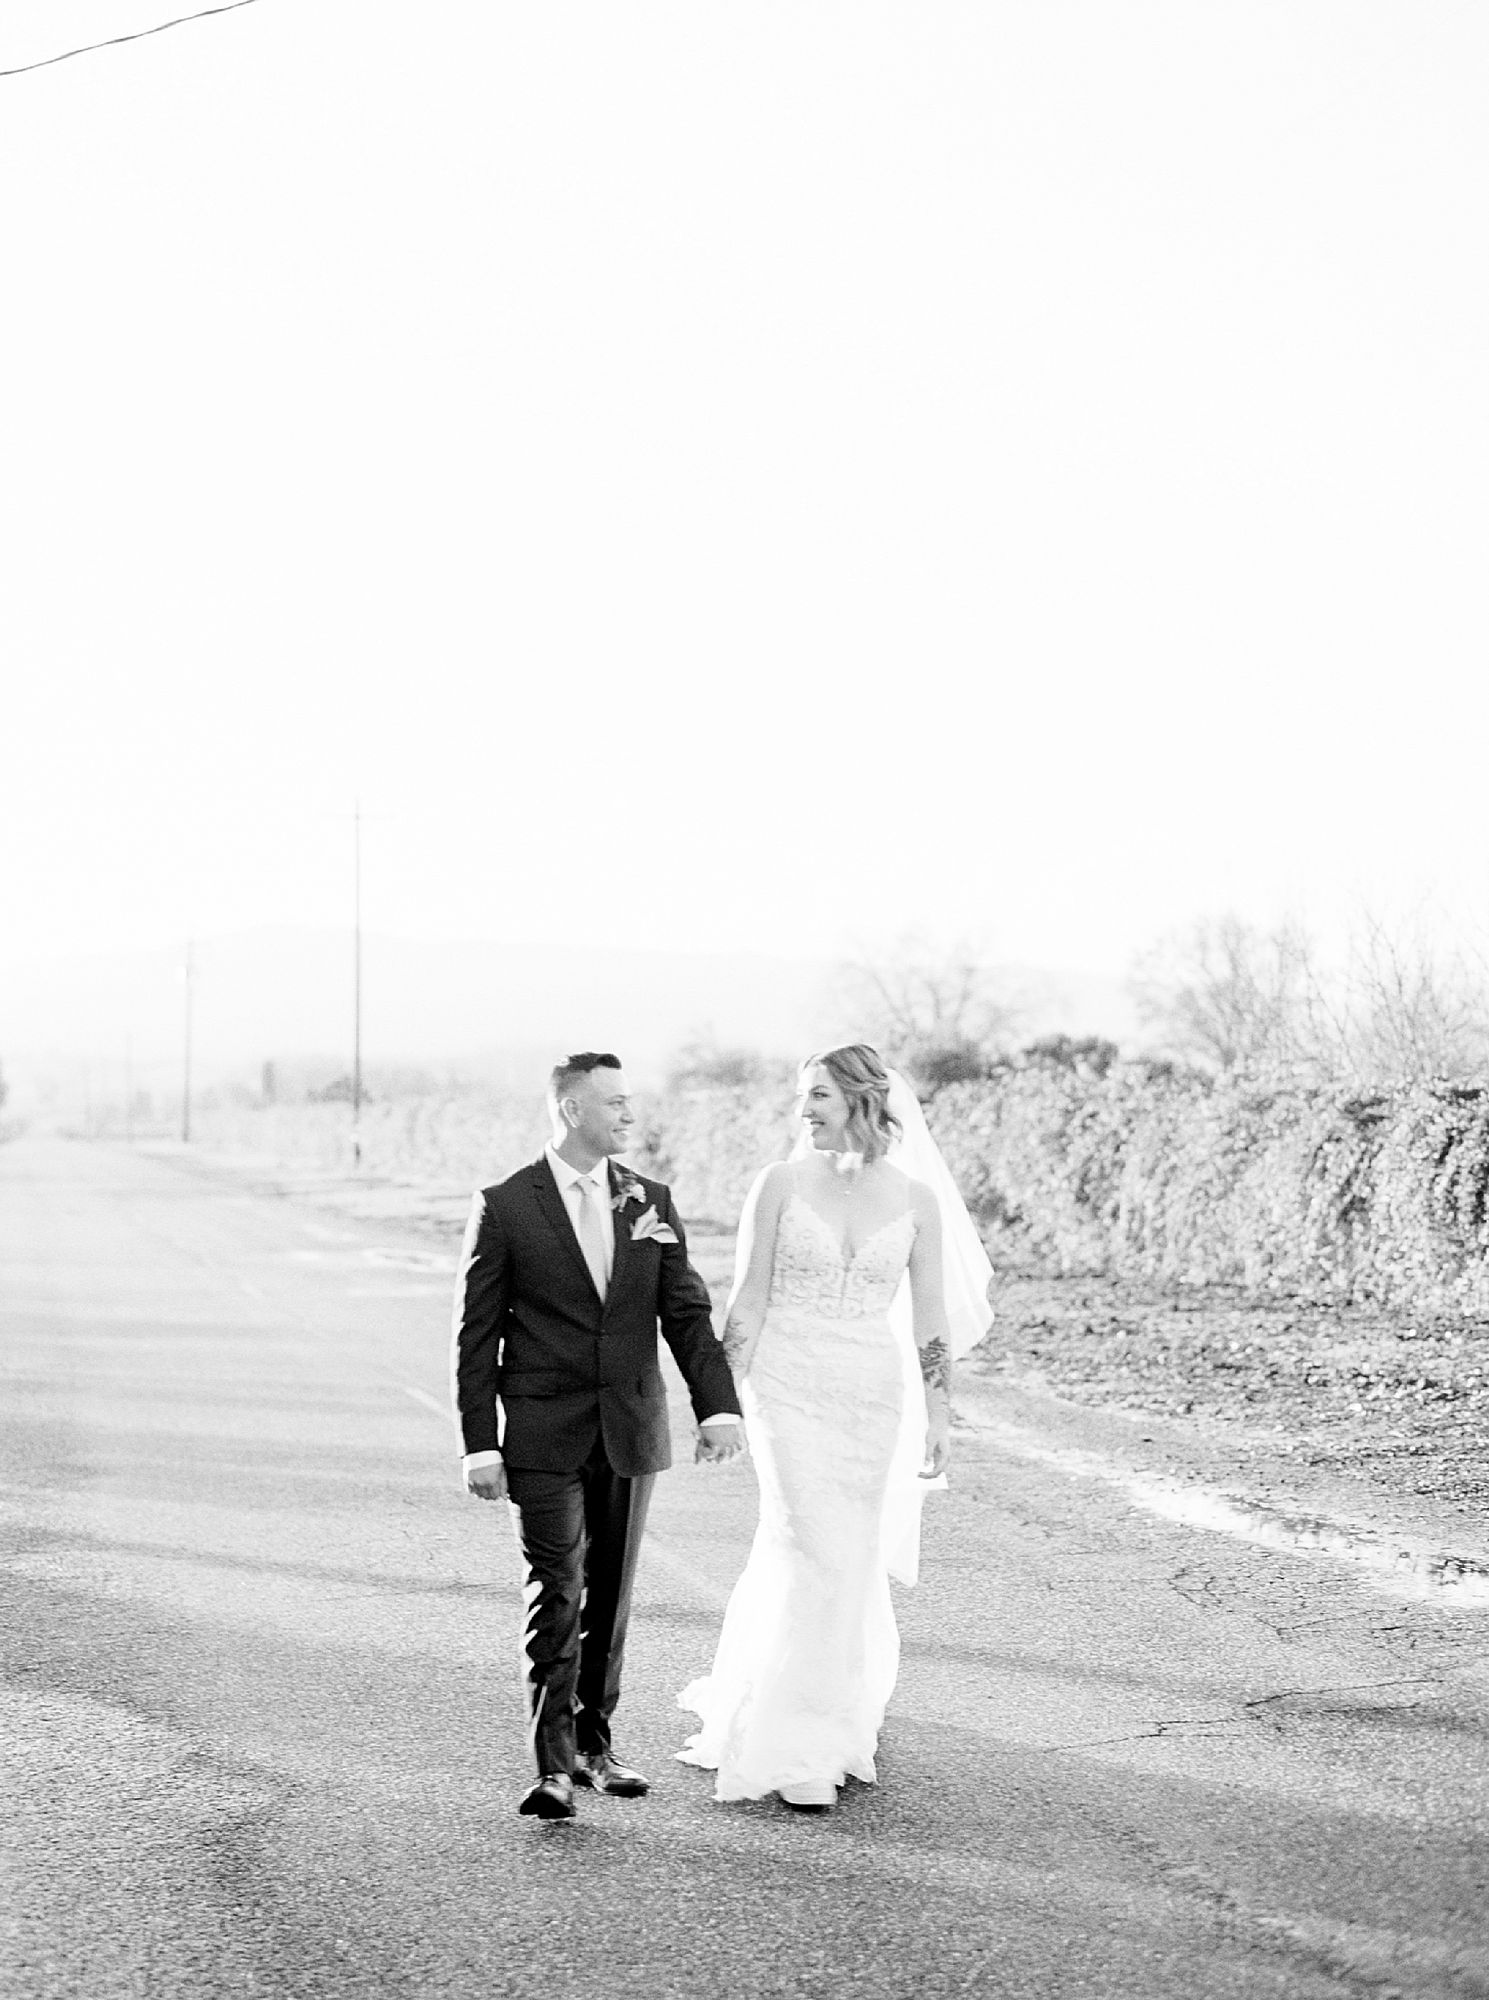 Inn at Park Winters Wedding - Lindsay and Shane - Ashley Baumgartner - Park Winters Wedding Photographer - Sacramento Wedding Photographer_0081.jpg